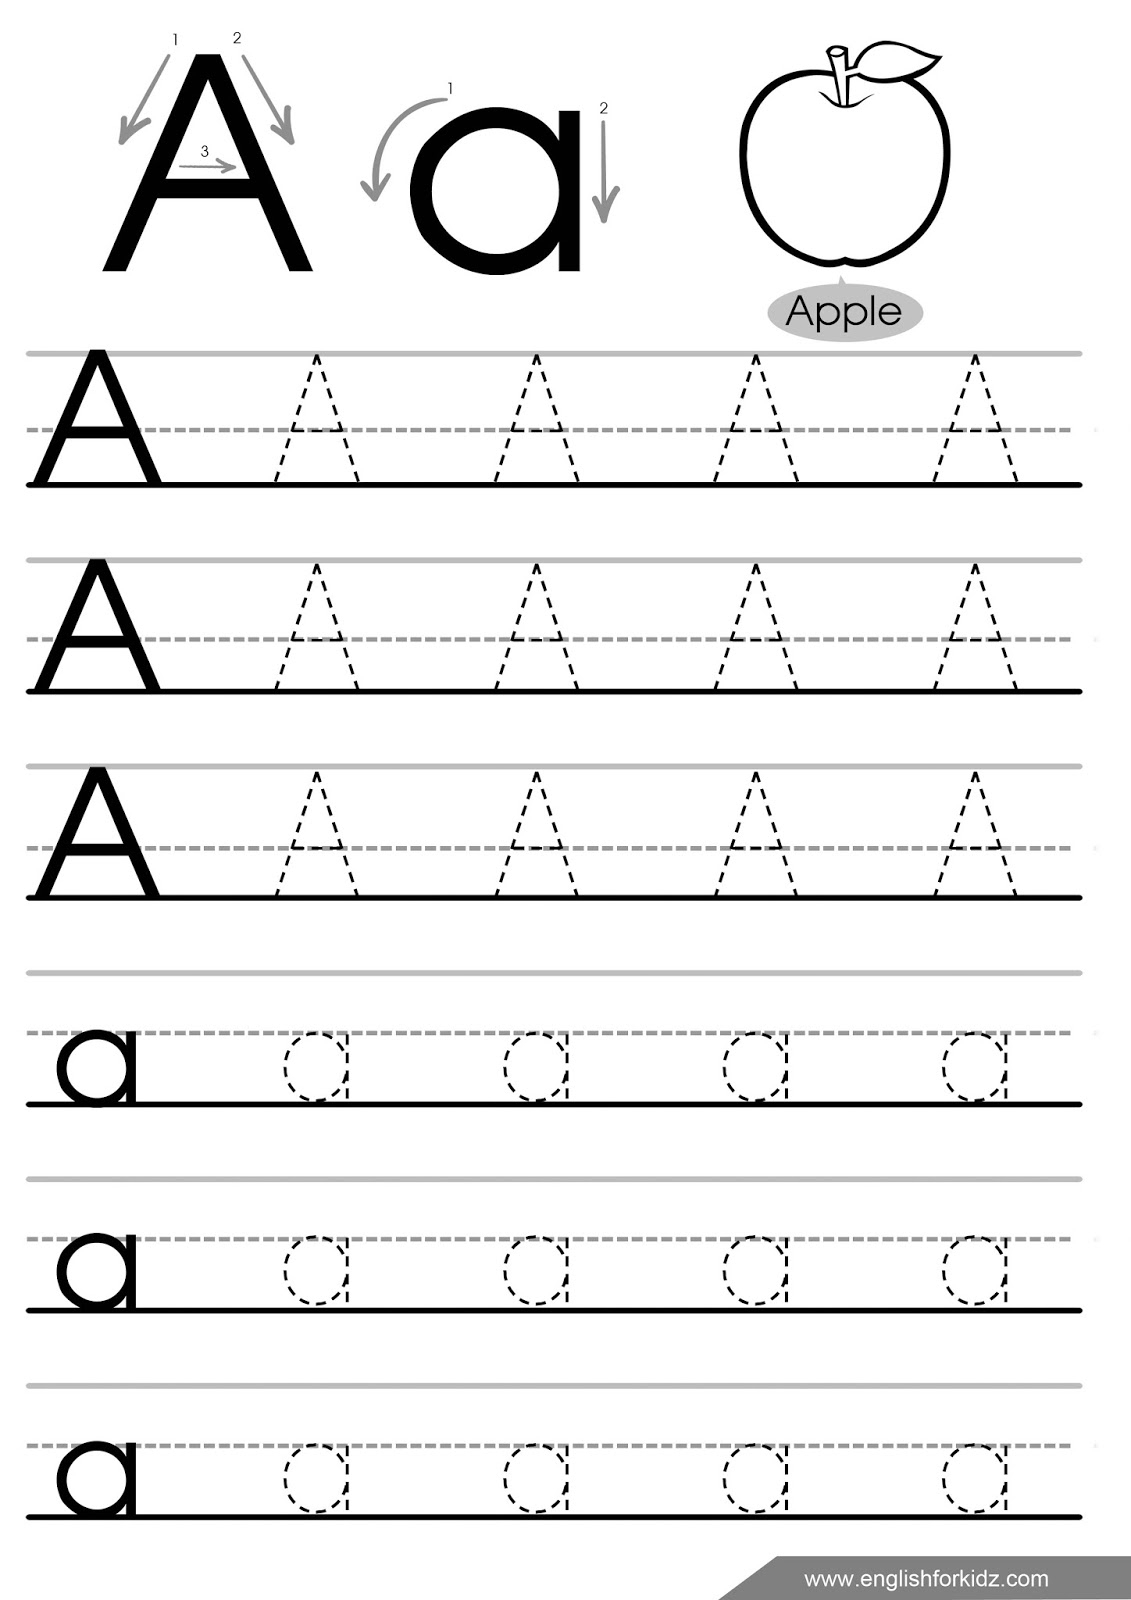 Letter A Worksheet - Wpa.wpart.co with regard to Letters For Tracing Kindergarten